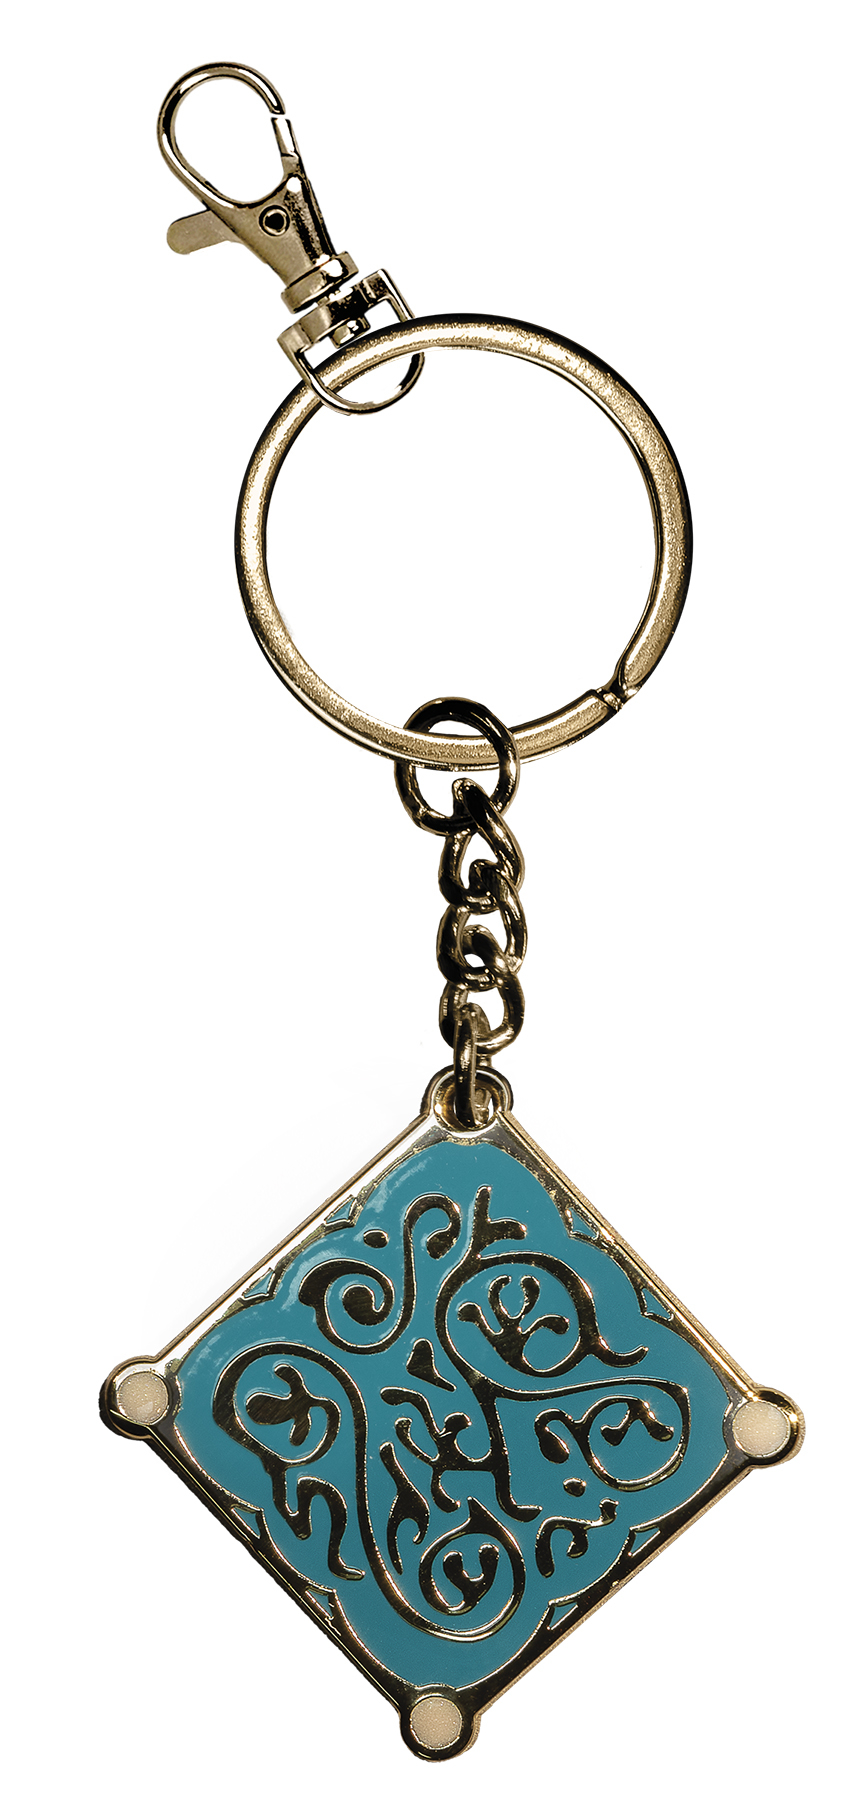 WITCHER 3 TRISS MEDALLION KEYCHAIN